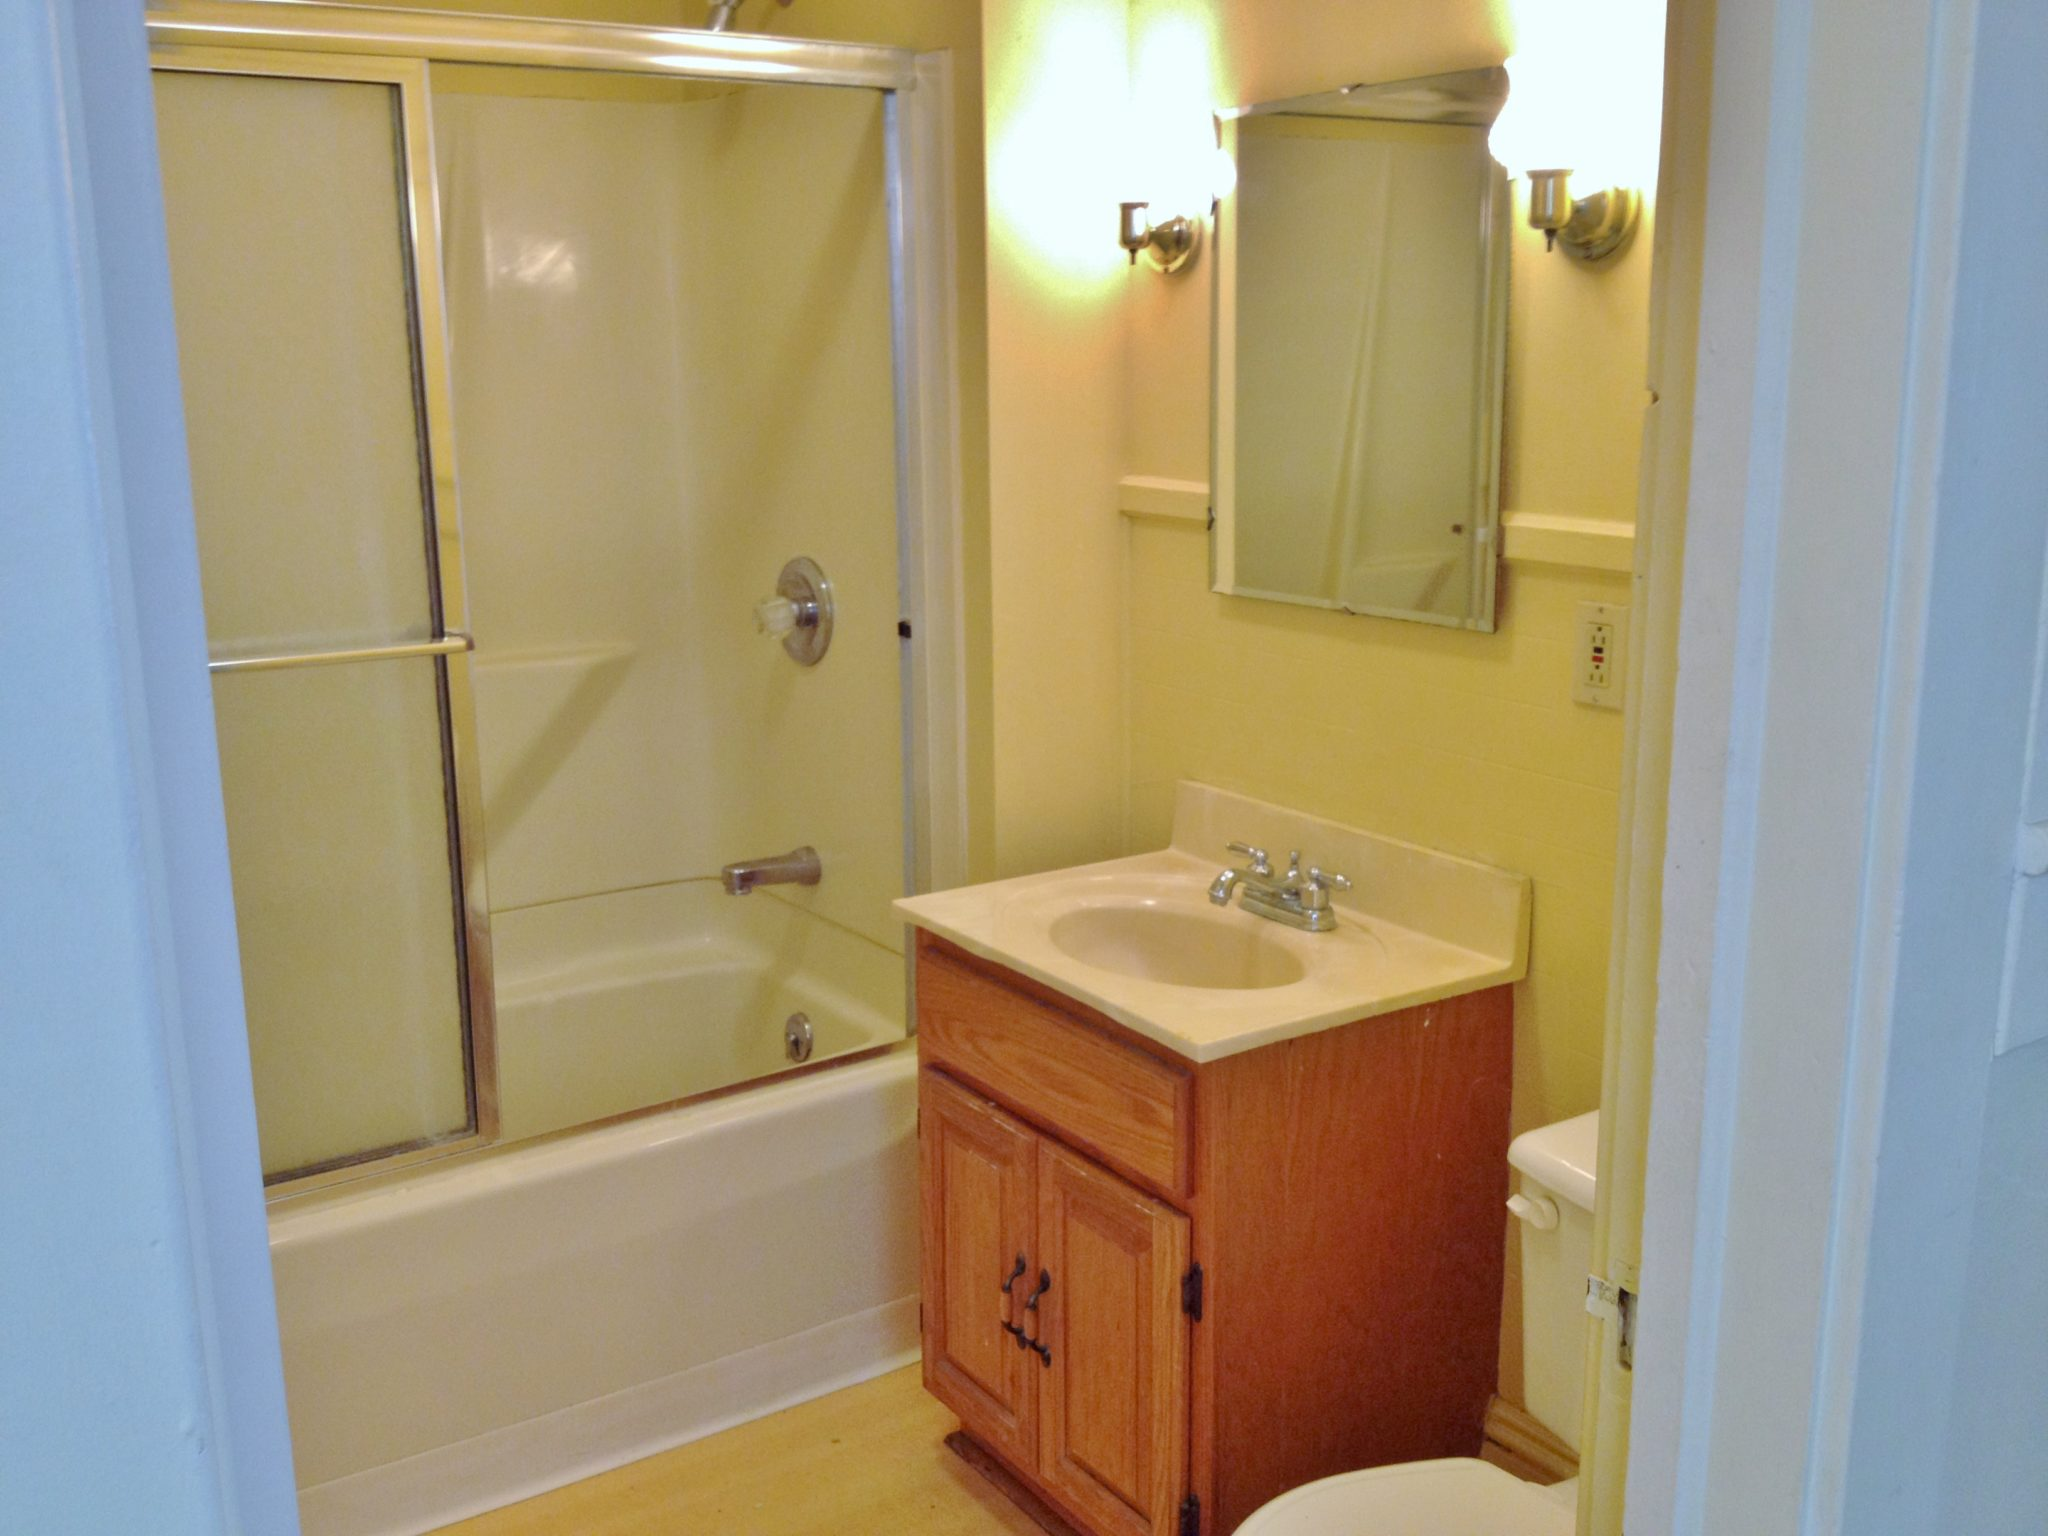 Bathroom photo from Apartment #3